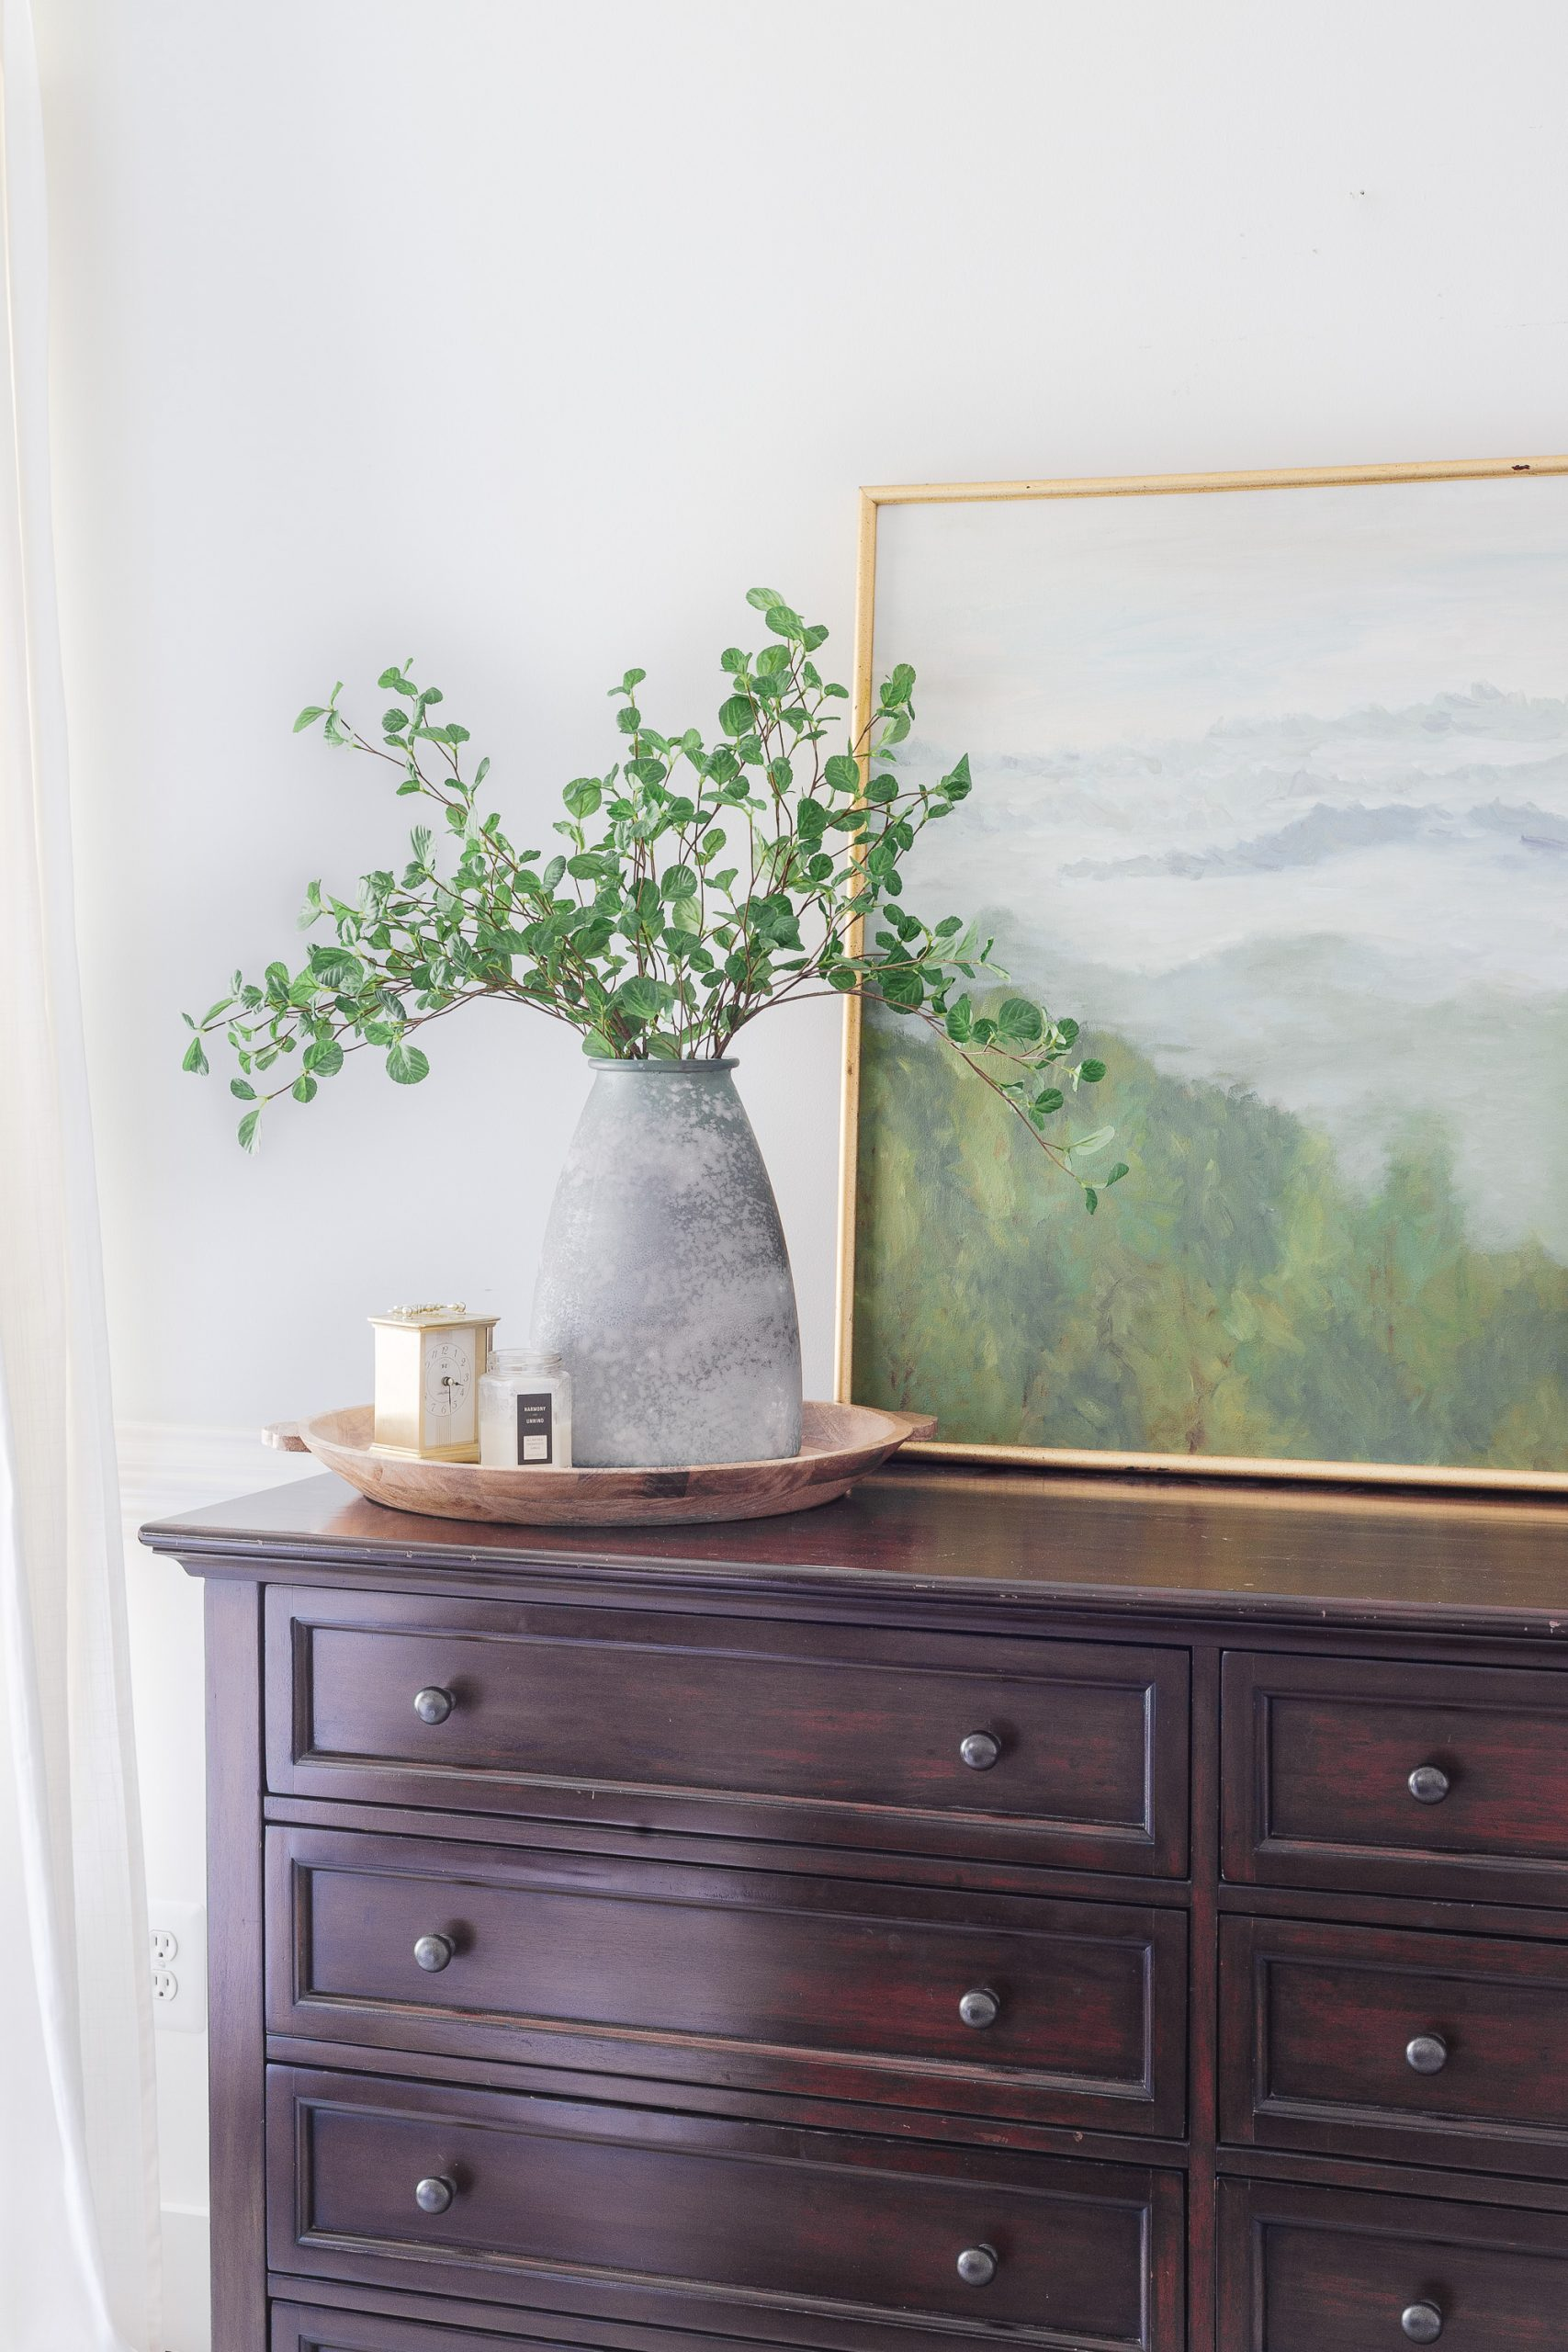 blue vase with greenery on top of a dresser